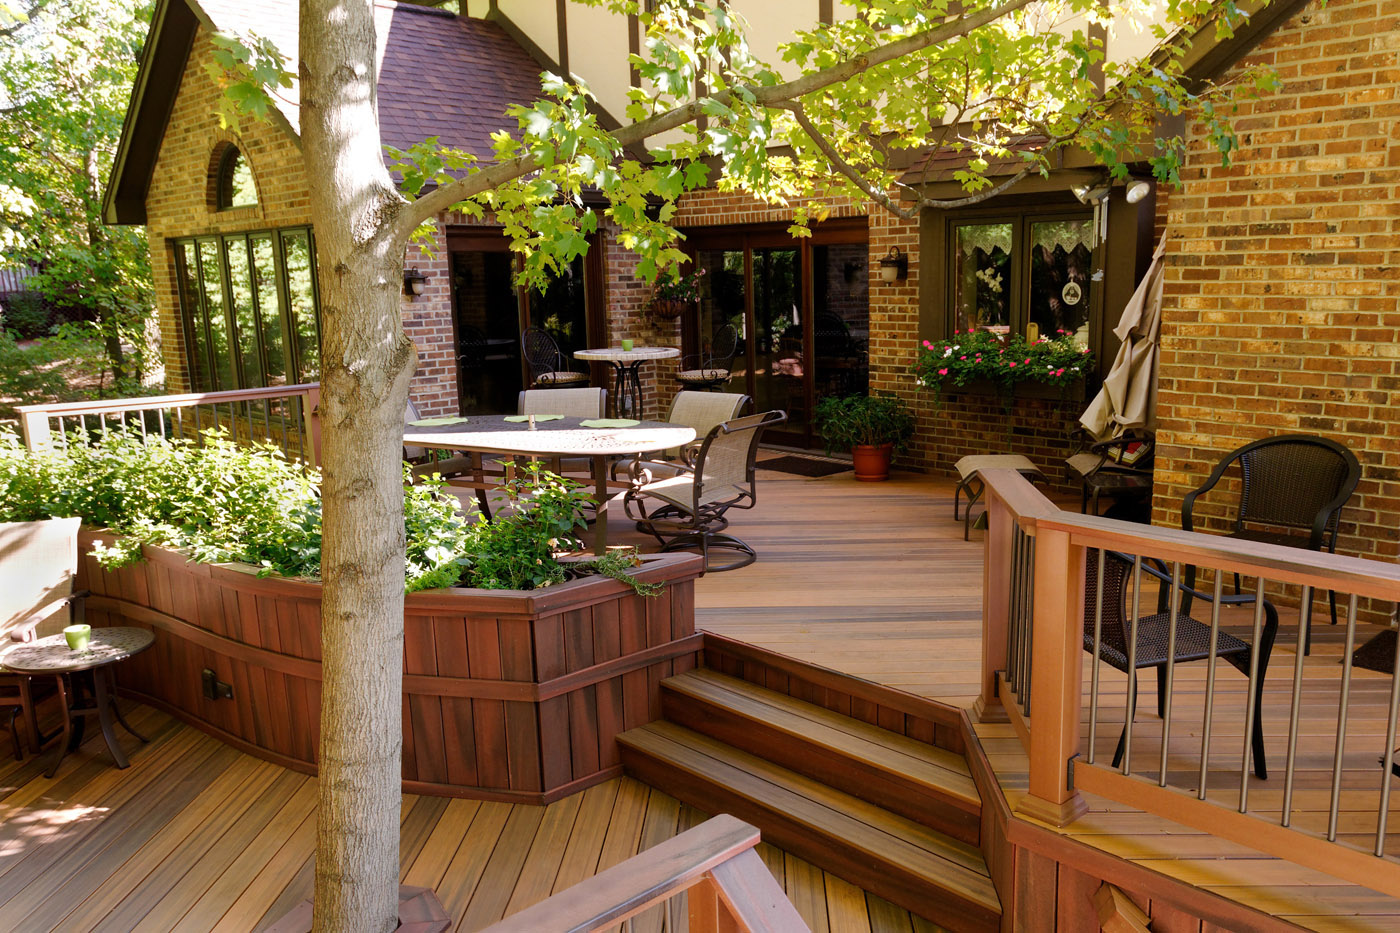 Raleigh Multi-Level Decking: More Than Just a Beautiful ... on Garden Patio Decking Ideas id=28922